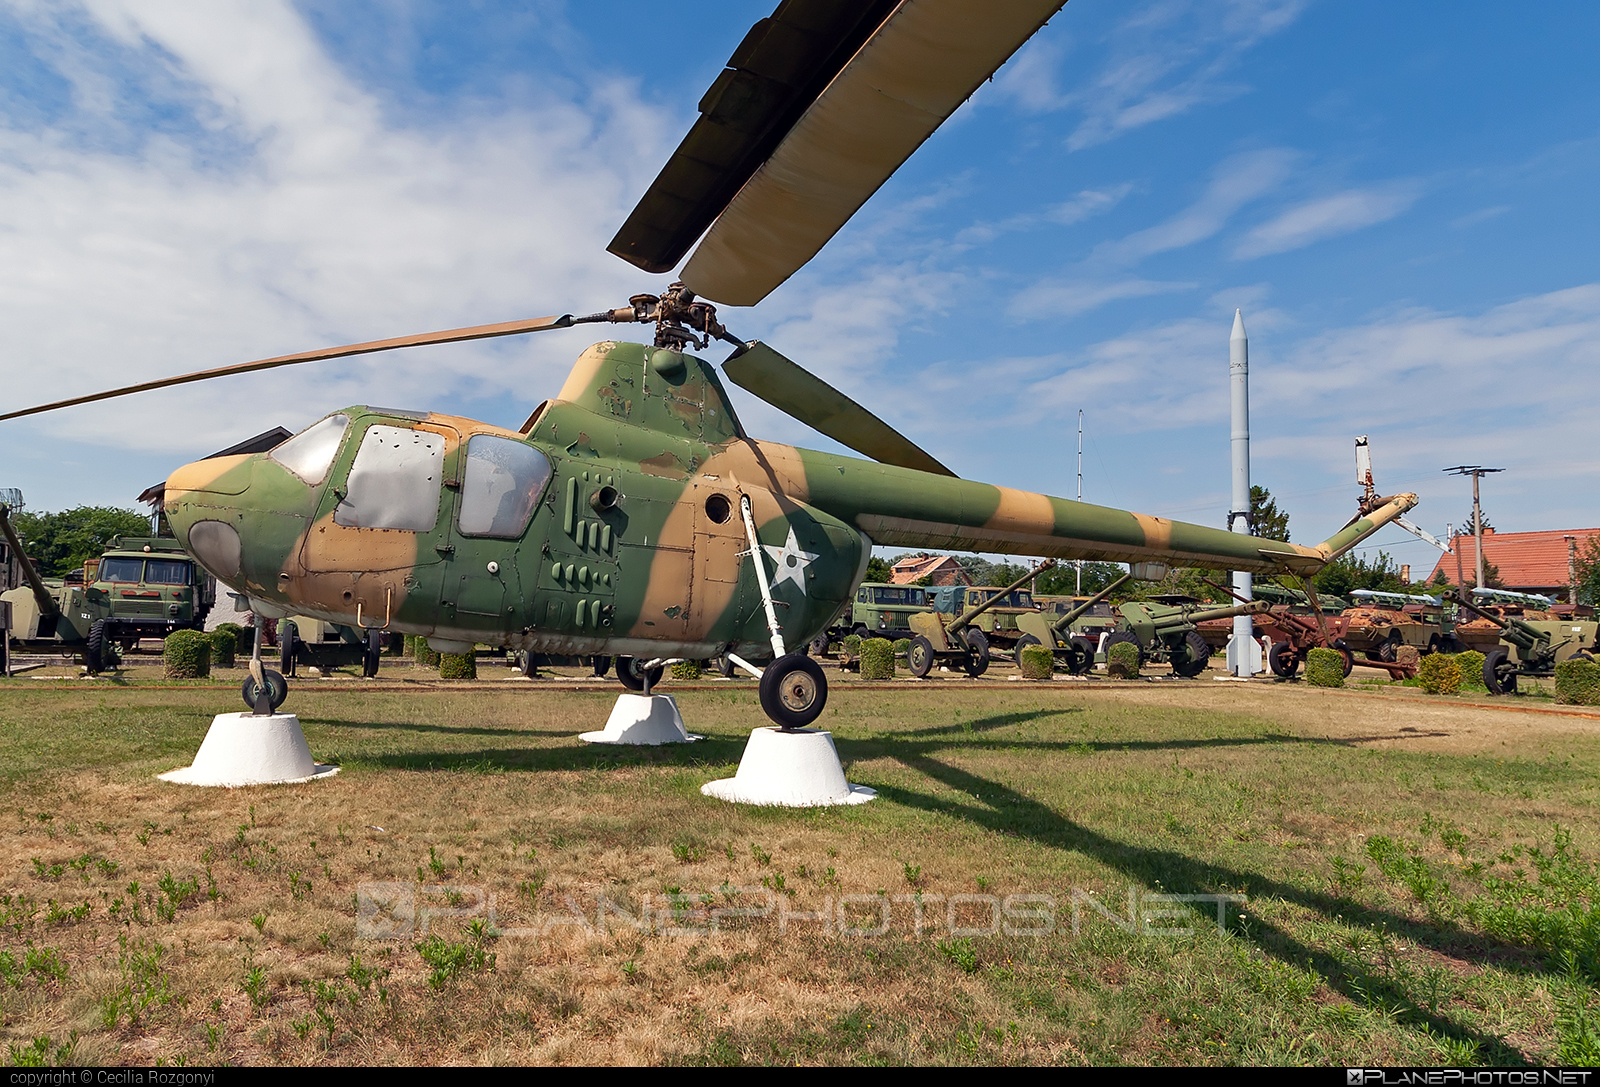 PZL-Mielec SM-1 - 032 operated by Magyar Néphadsereg (Hungarian People's Army) #hungarianpeoplesarmy #magyarnephadsereg #mi1 #mil1 #milmi1 #pzl #pzlmielec #pzlmielecsm1 #pzlsm1 #sm1